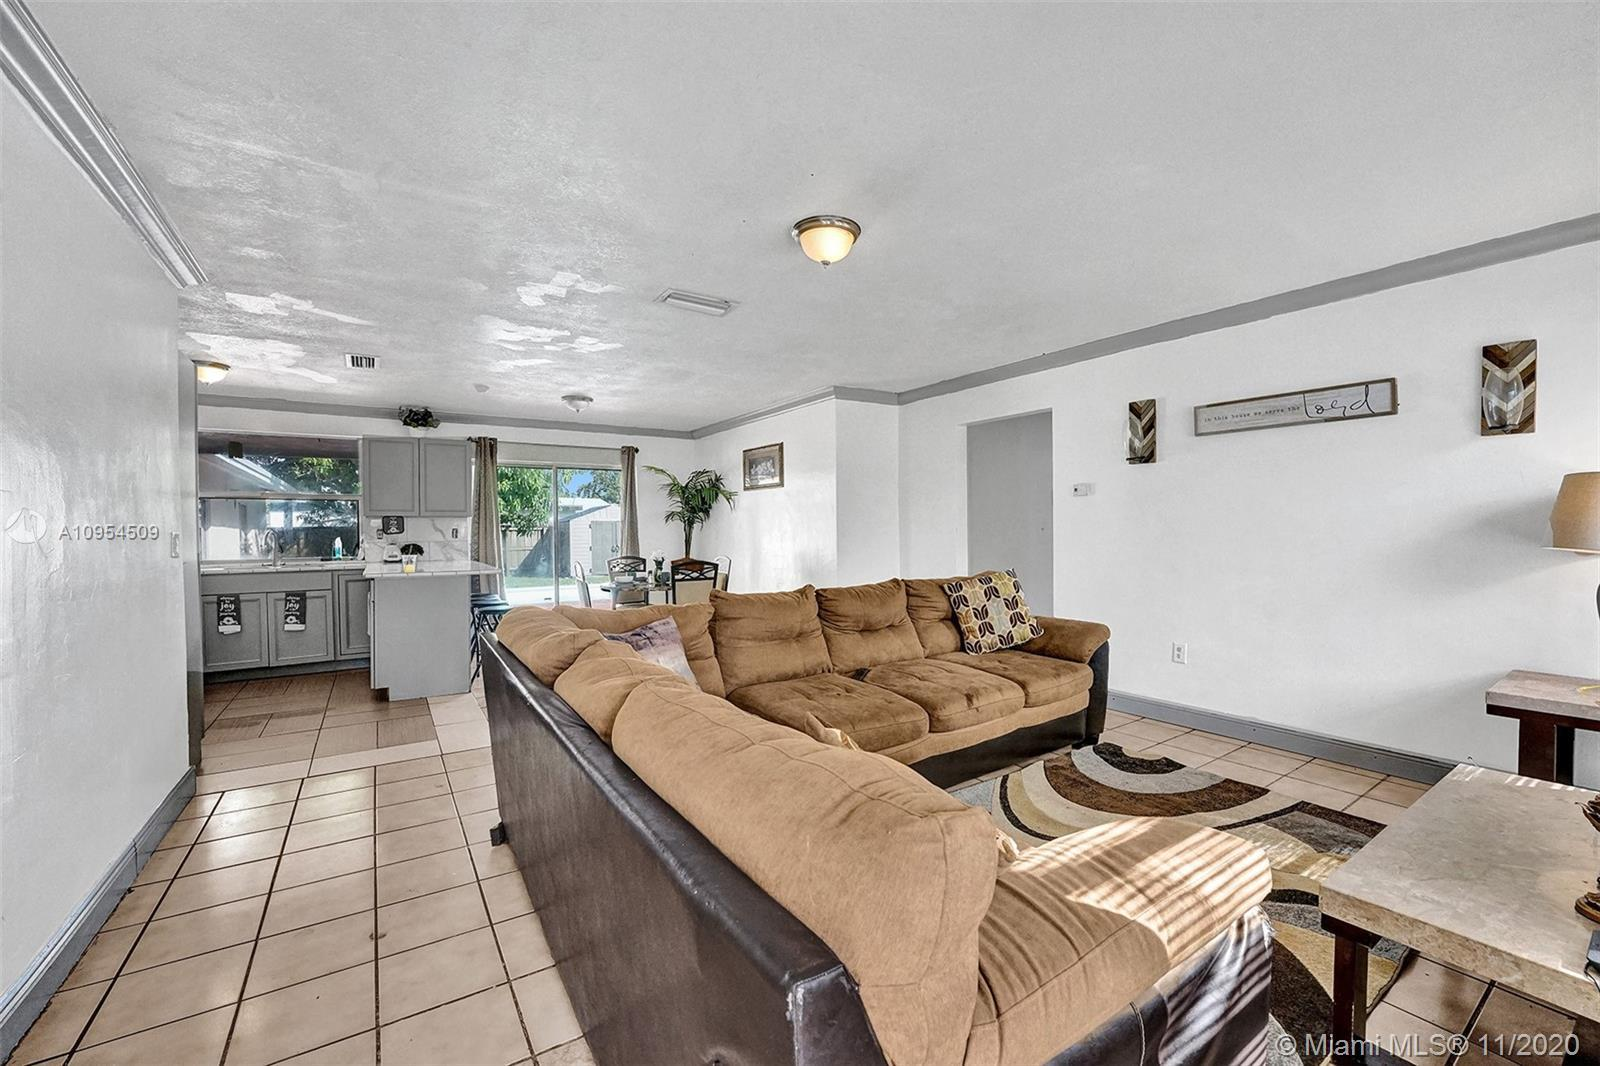 BEAUTIFUL, SPACIOUS AND HIGHLY DESIRED 5 BEDROOM AND 3 BATHROOM IN THE HHOLLYWOOD AREA. BRING YOUR F